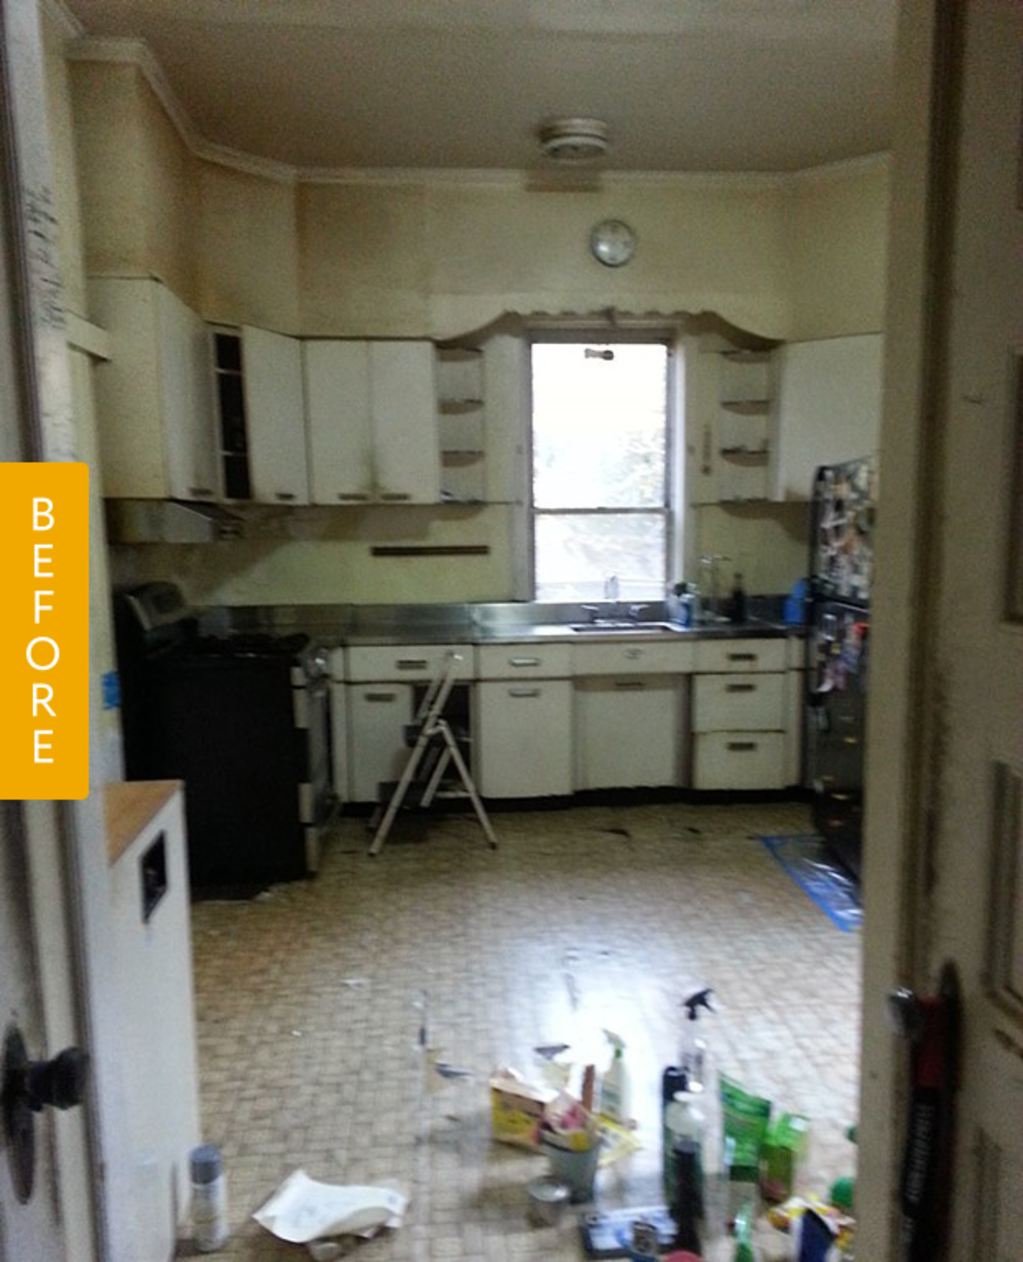 Before & After: A Budget Kitchen Remodel With Vintage